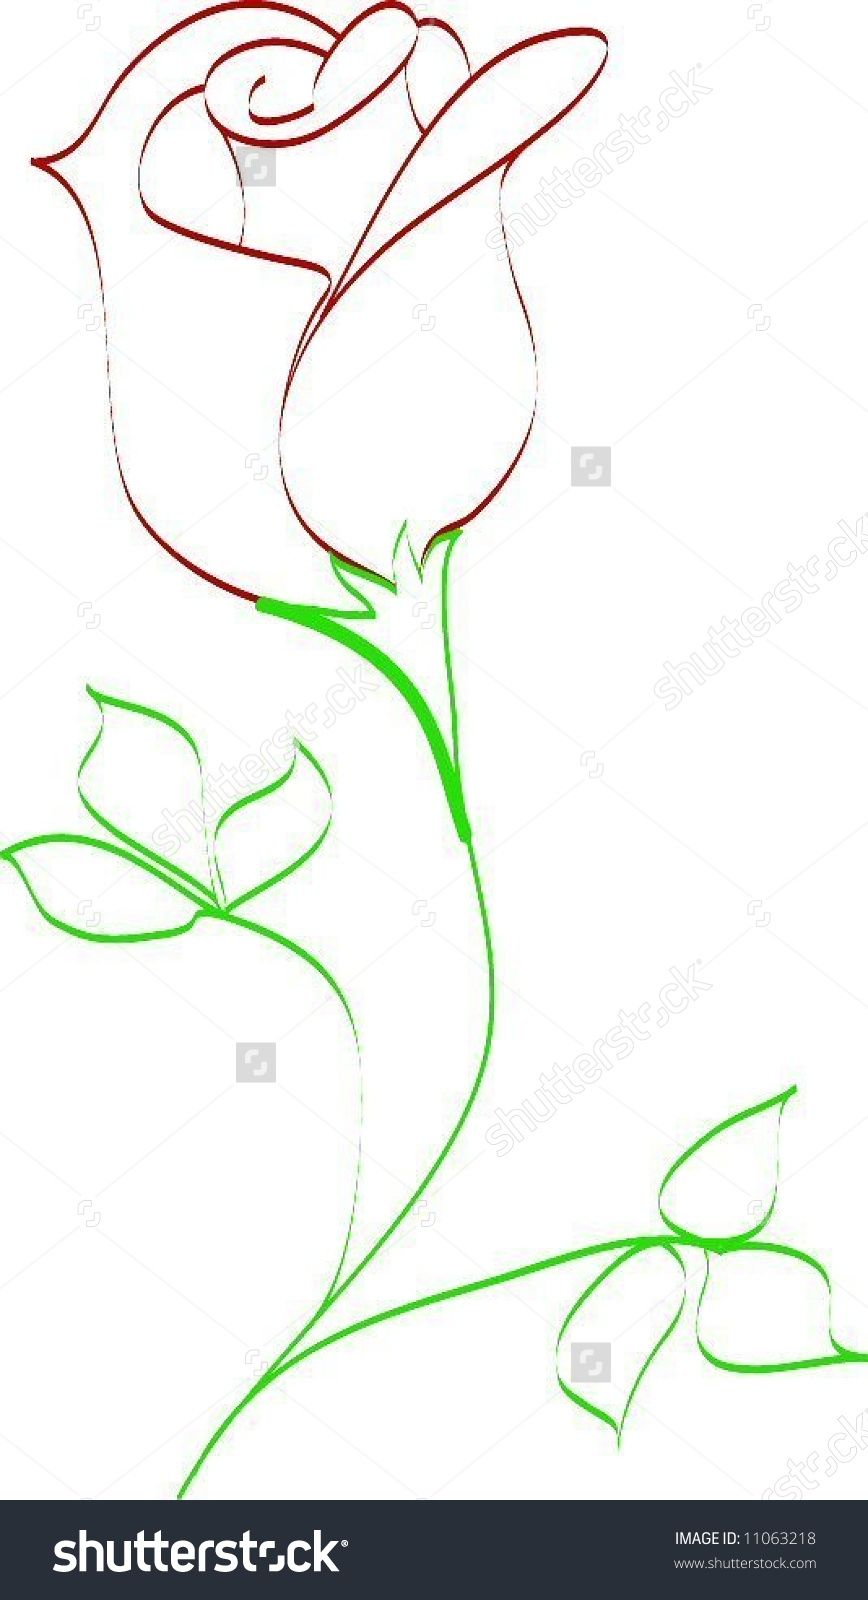 Simple Line Drawing Of Rose Bud Stock Vector Illustration 11063218 Simple Flower Drawing Roses Drawing Simple Line Drawings